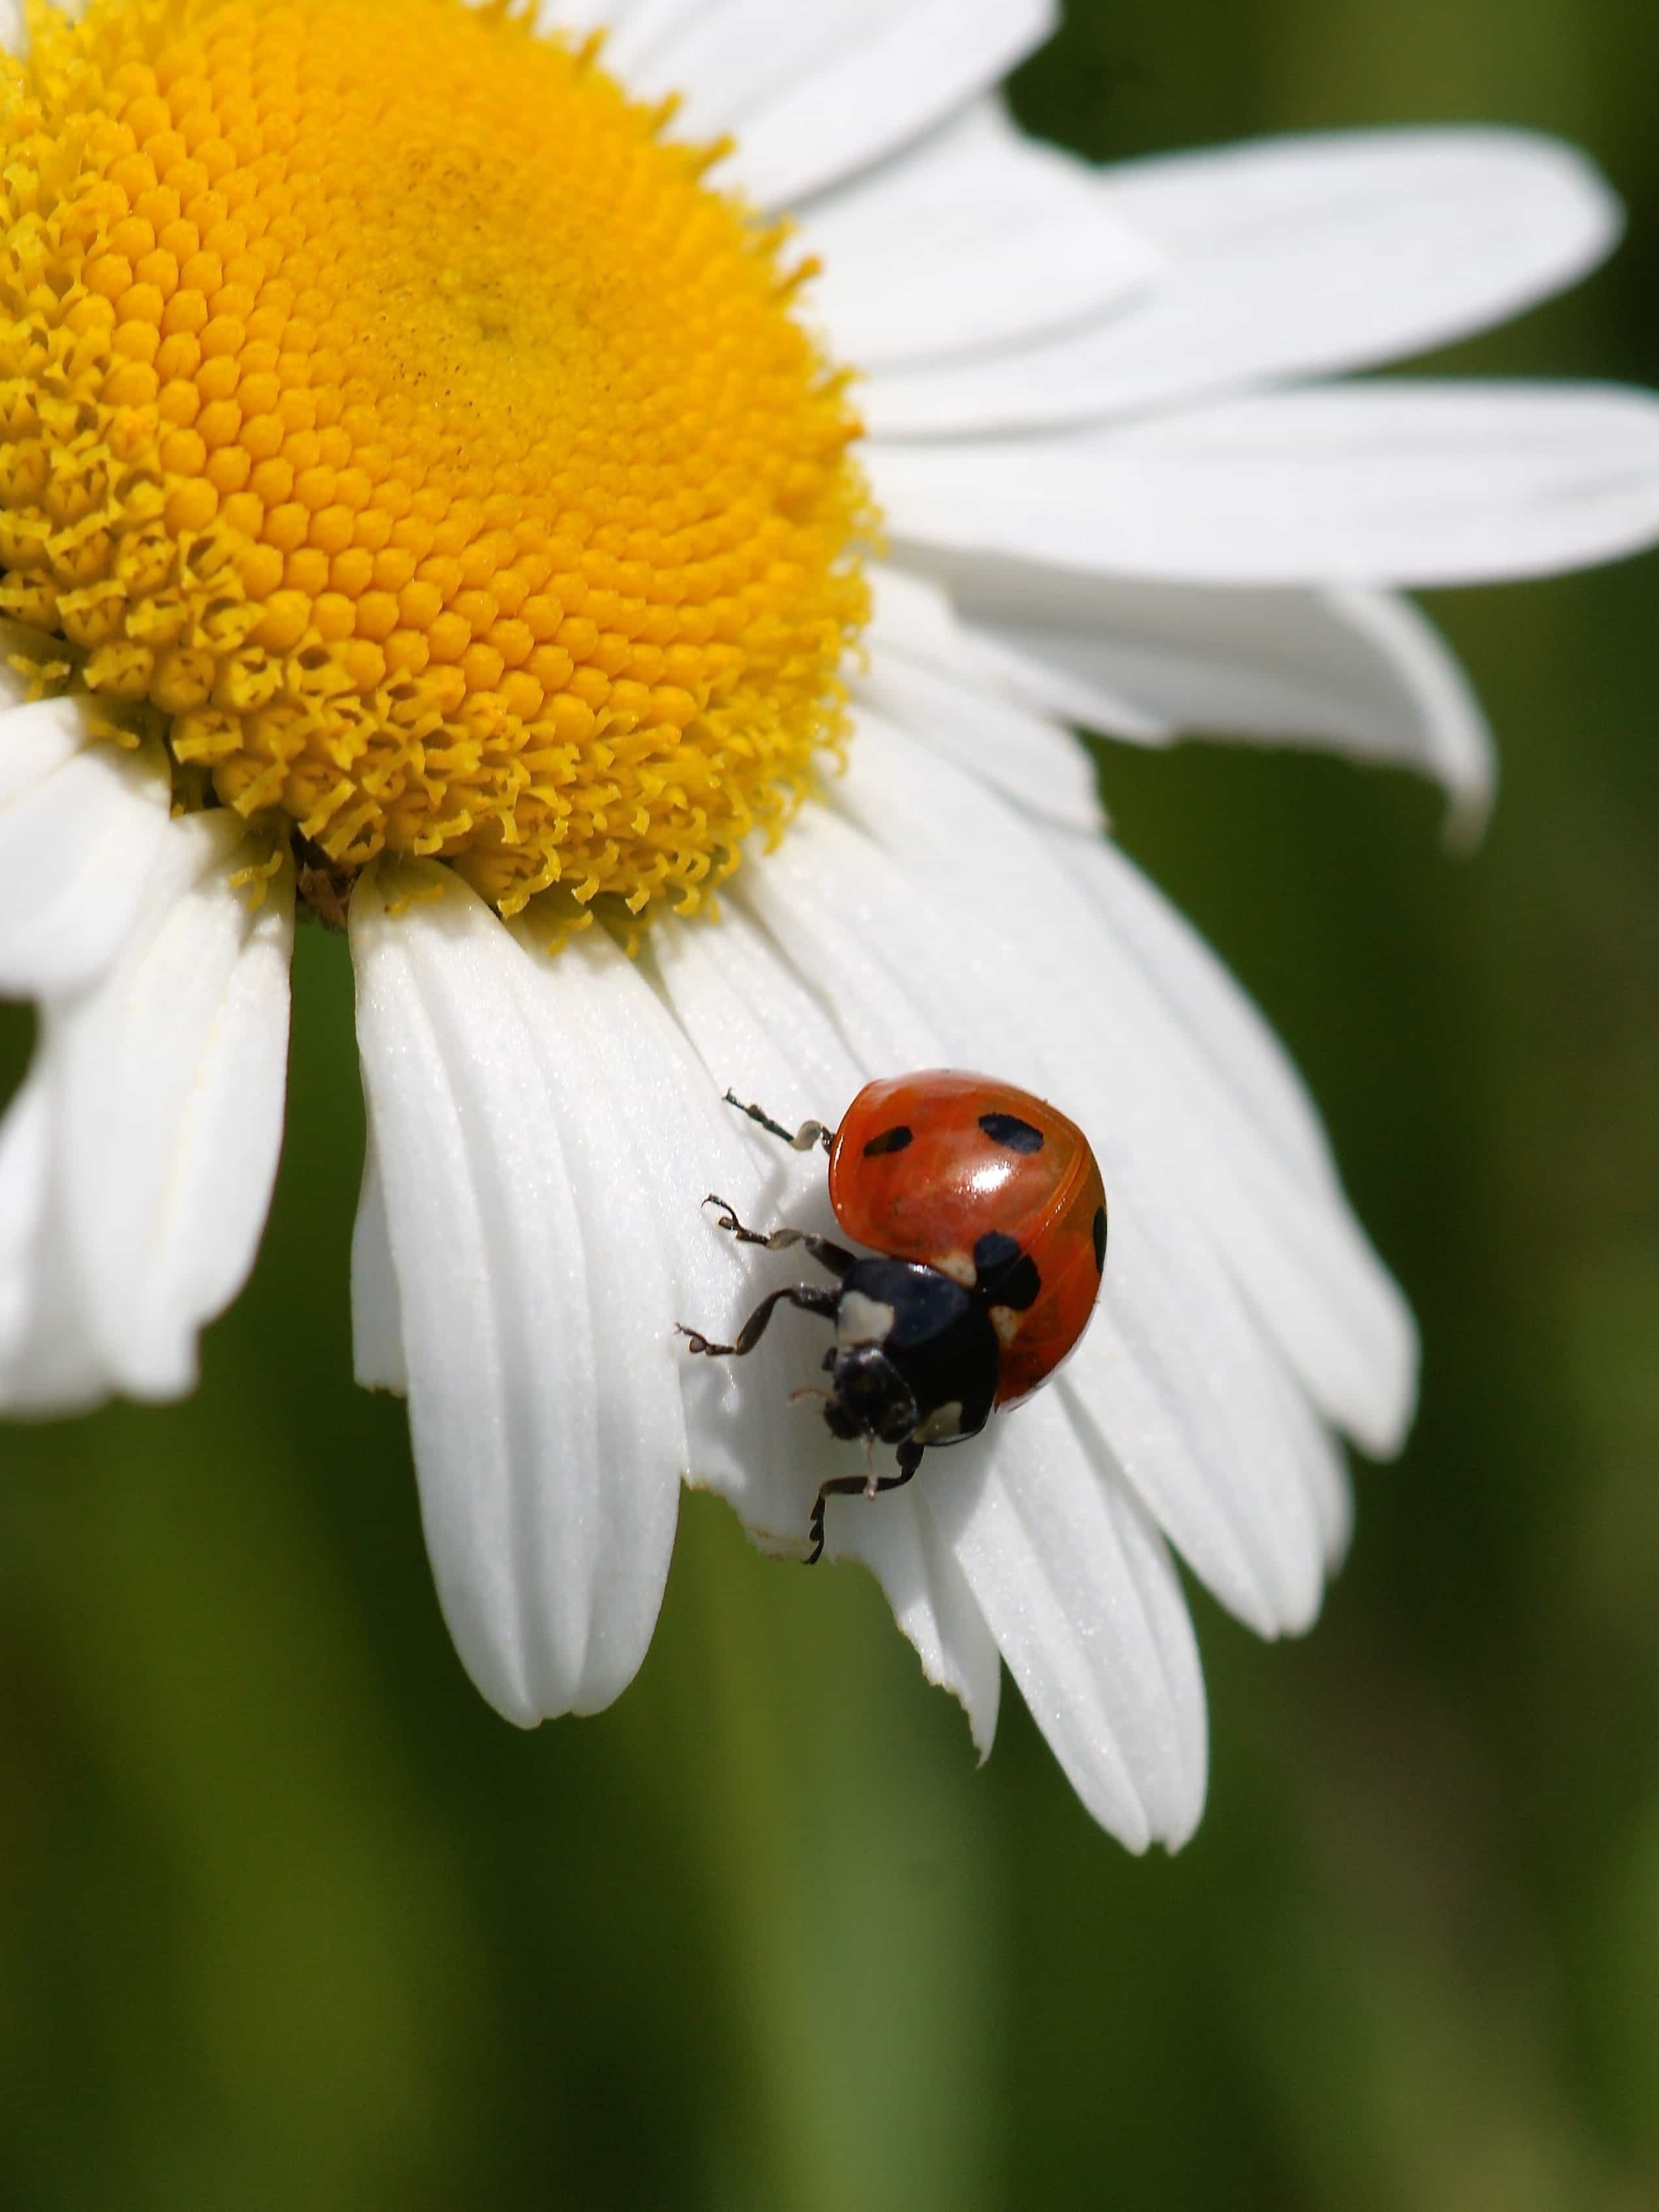 Free picture: beetle, summer, ladybug, nature, flora, insect, plant ...